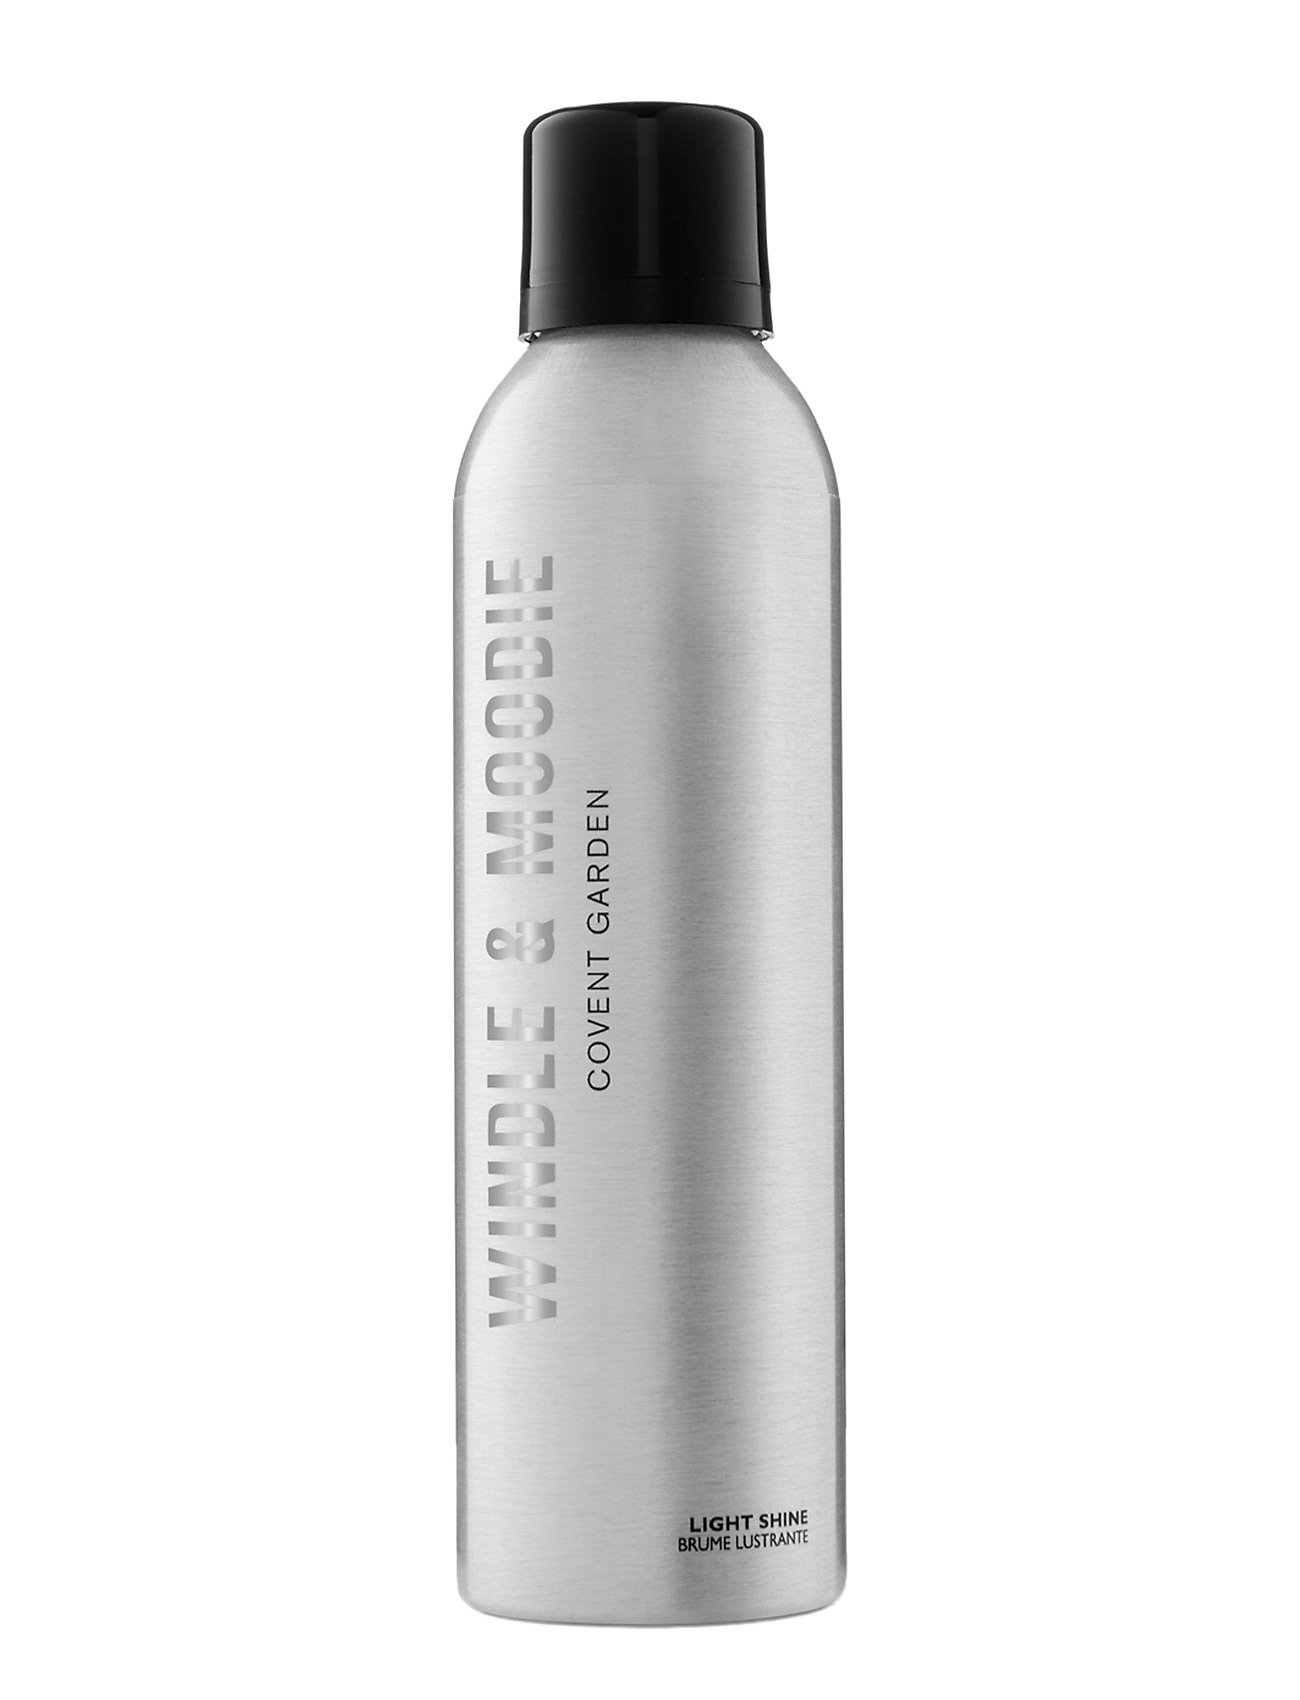 windle & moodie – Light shine hairspray på boozt.com dk